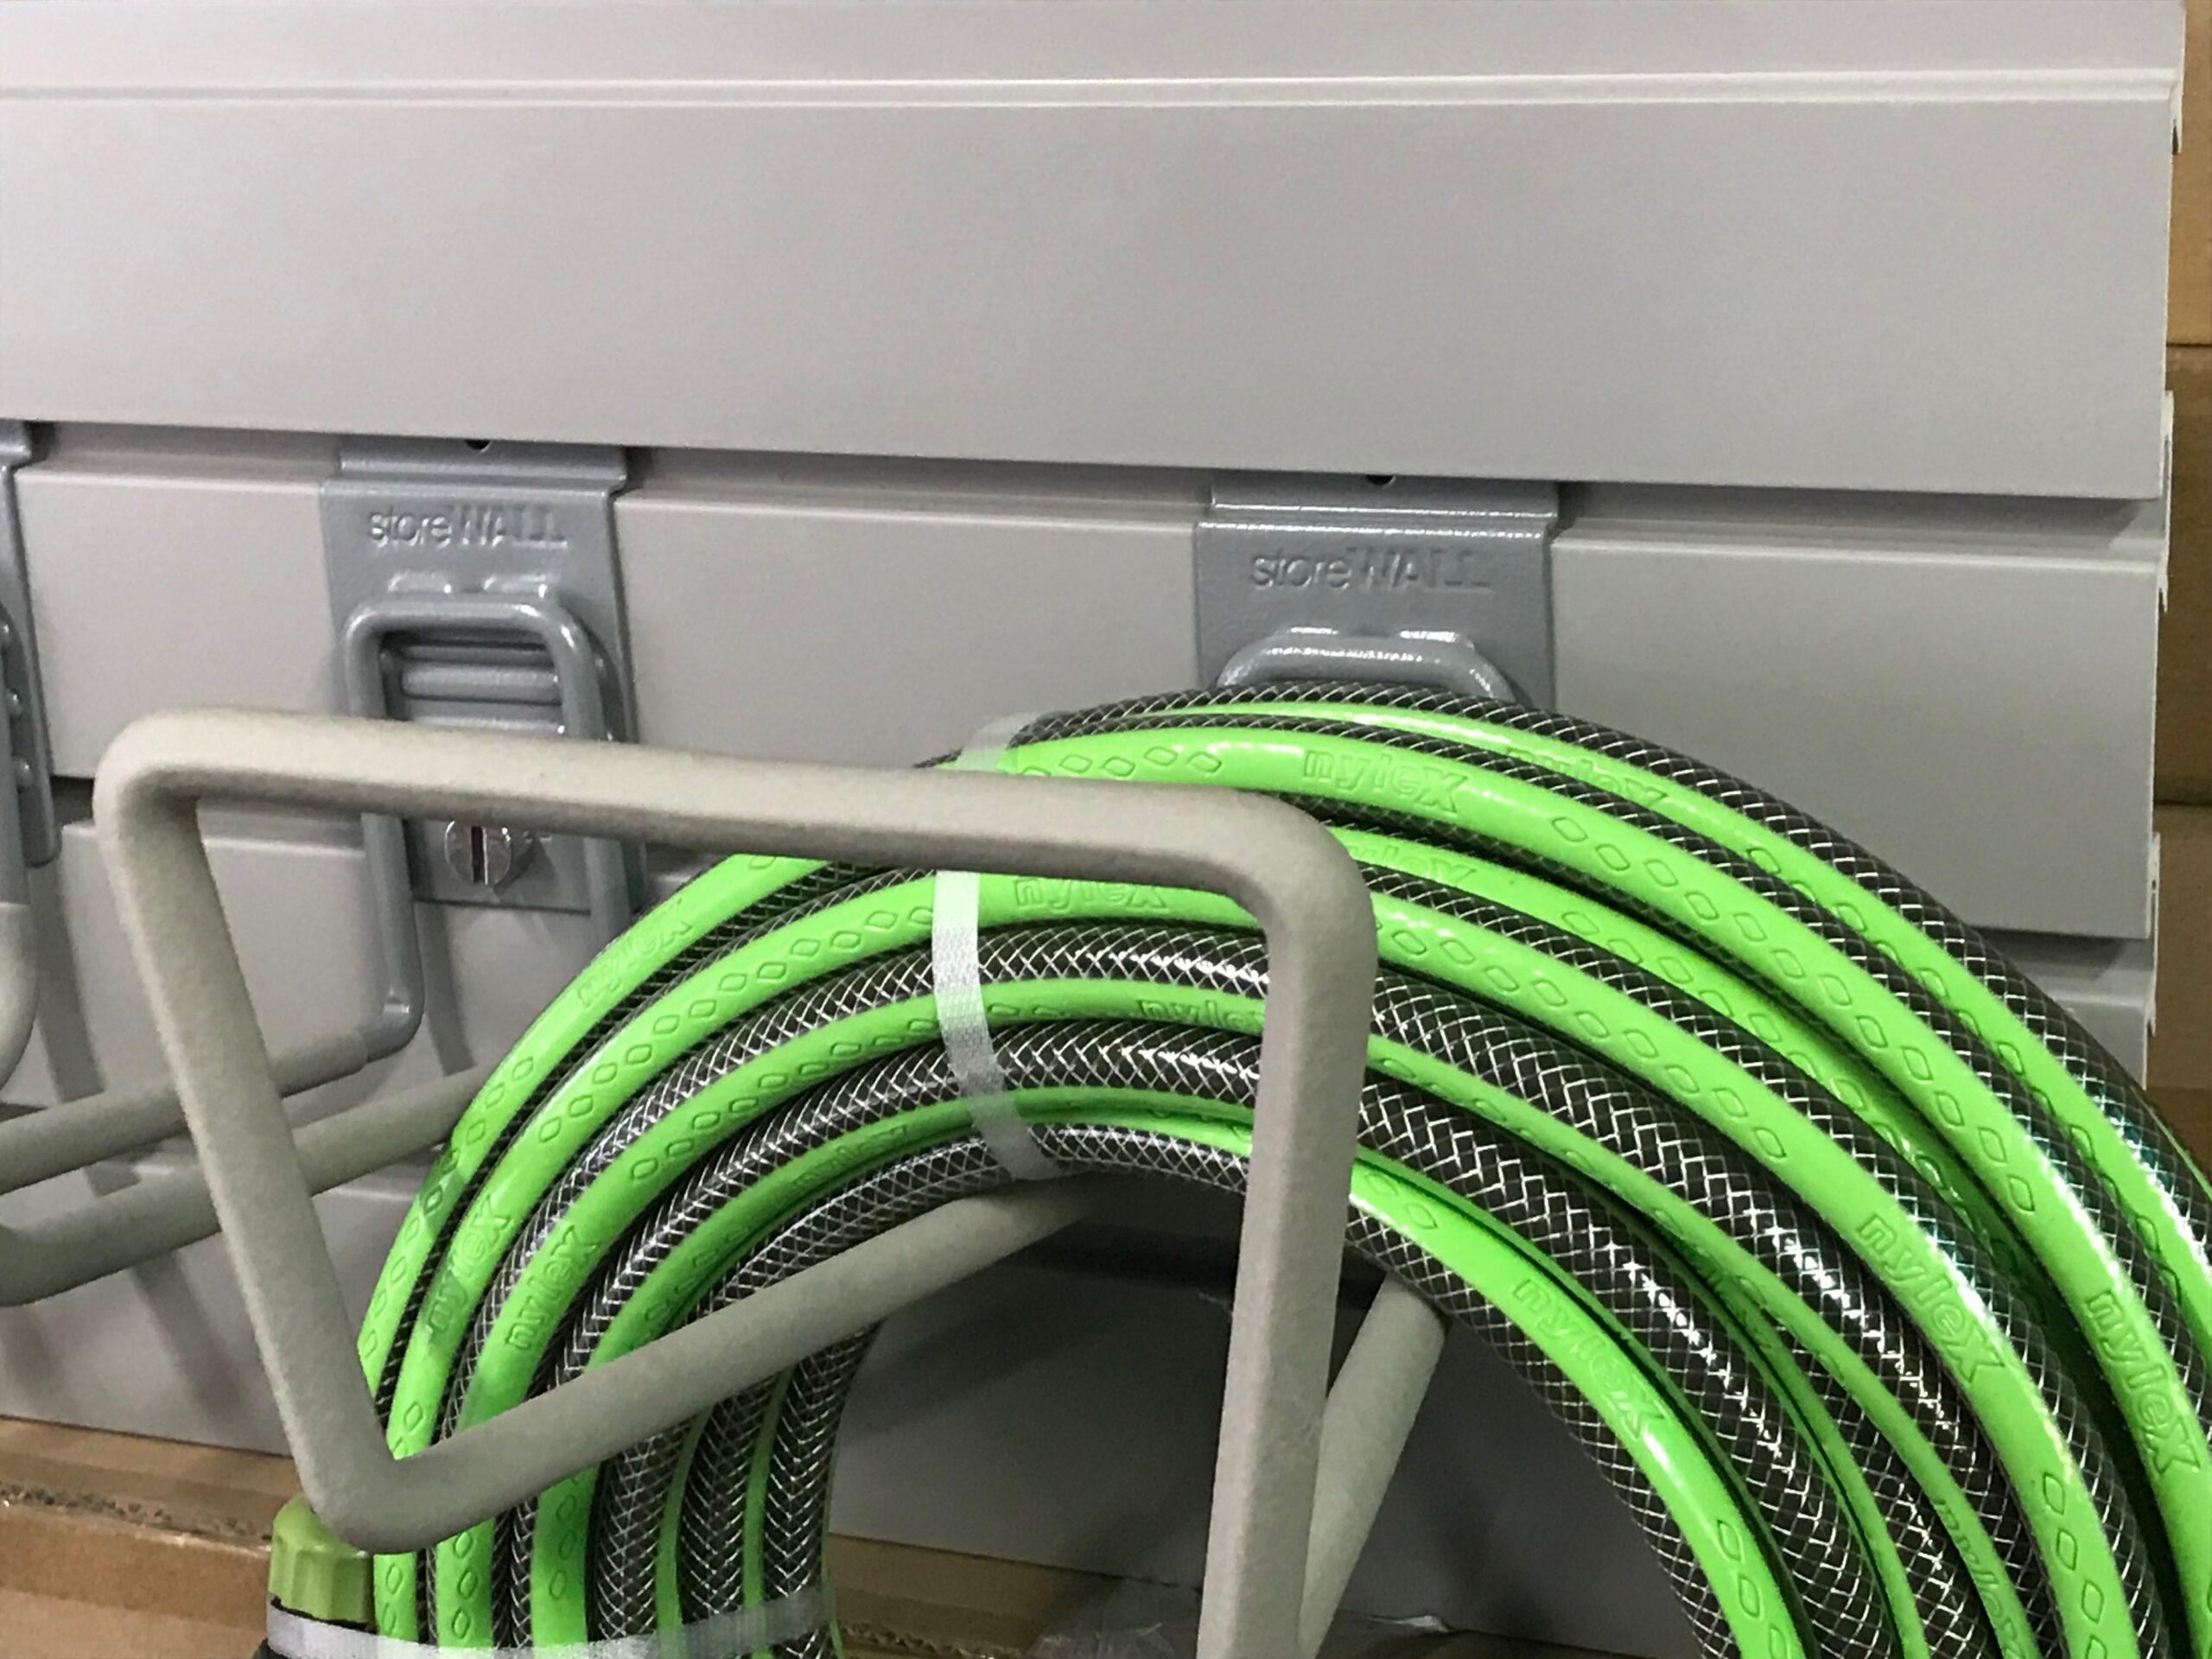 Storing Garden Hose in Garage